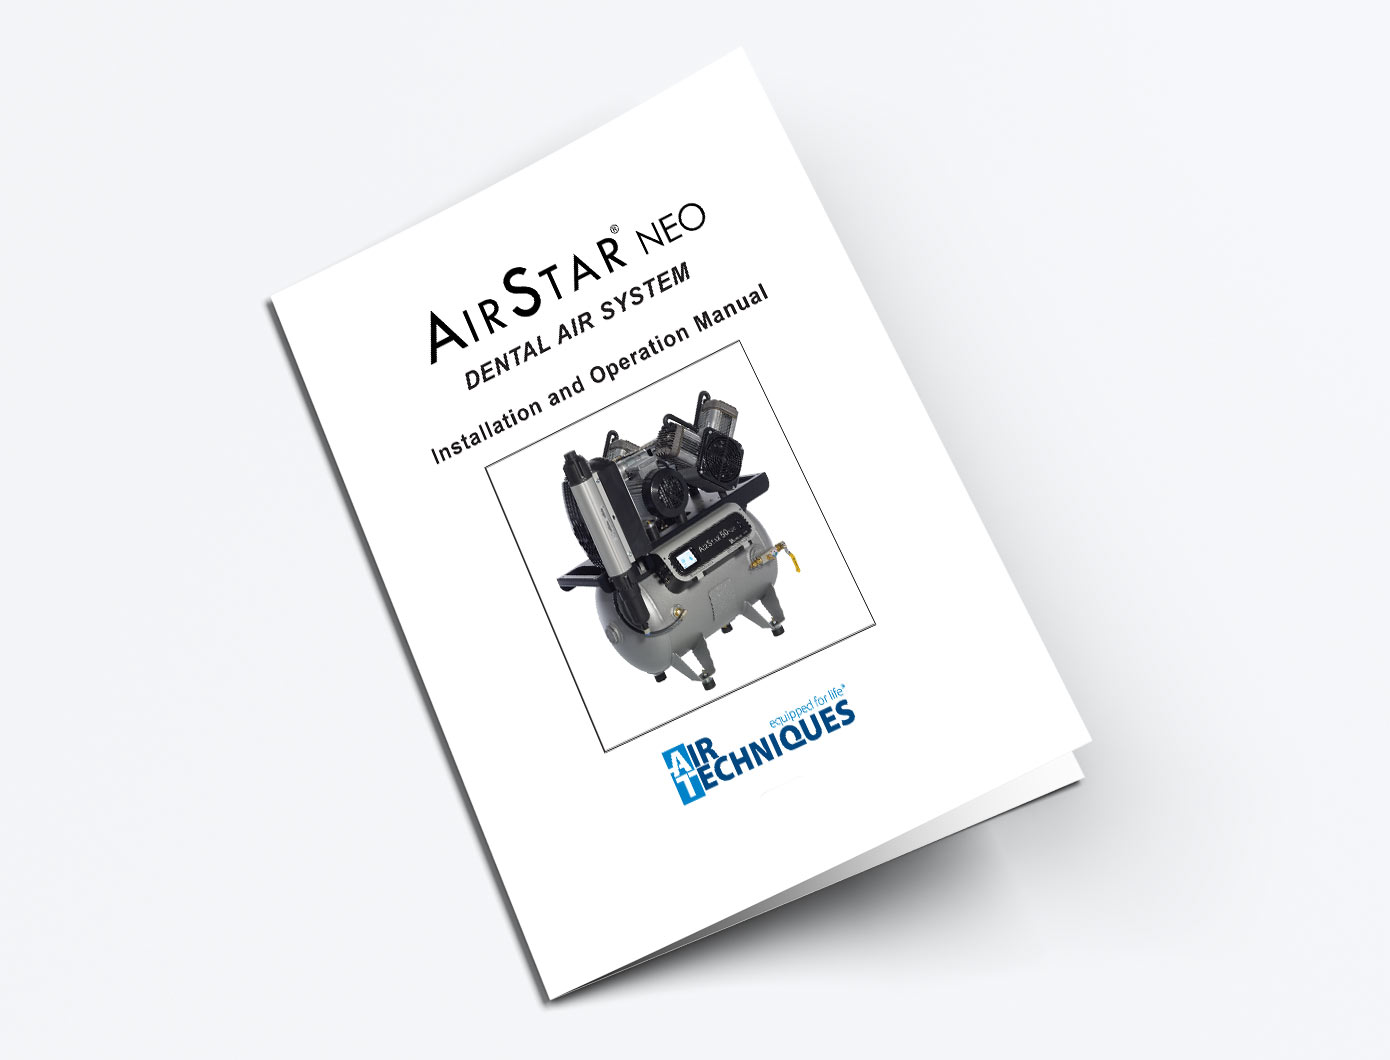 AirStar NEO Air Compressors_OperatorsManual manuals air techniques  at bayanpartner.co